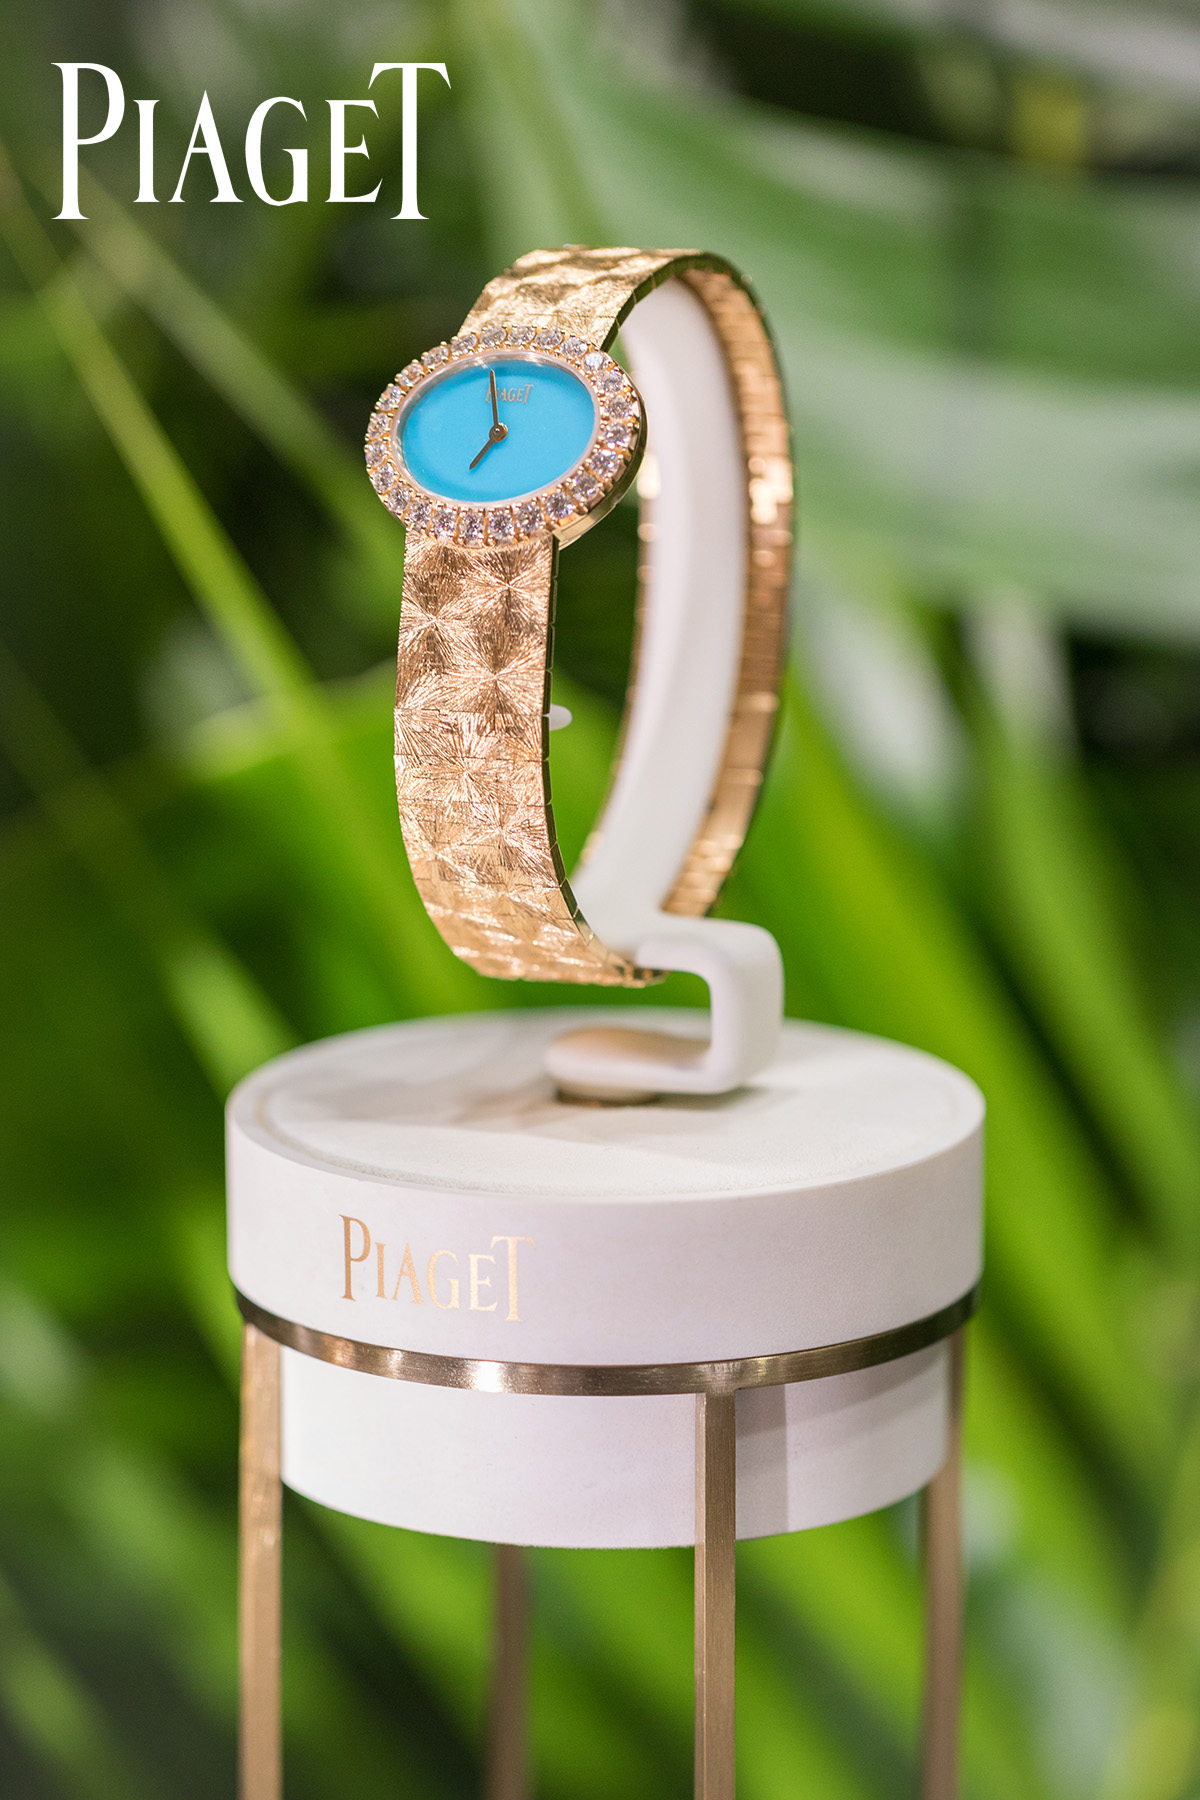 Commercial photography of Piaget female watch by Loesje Kessels Fashion Photographer Dubai